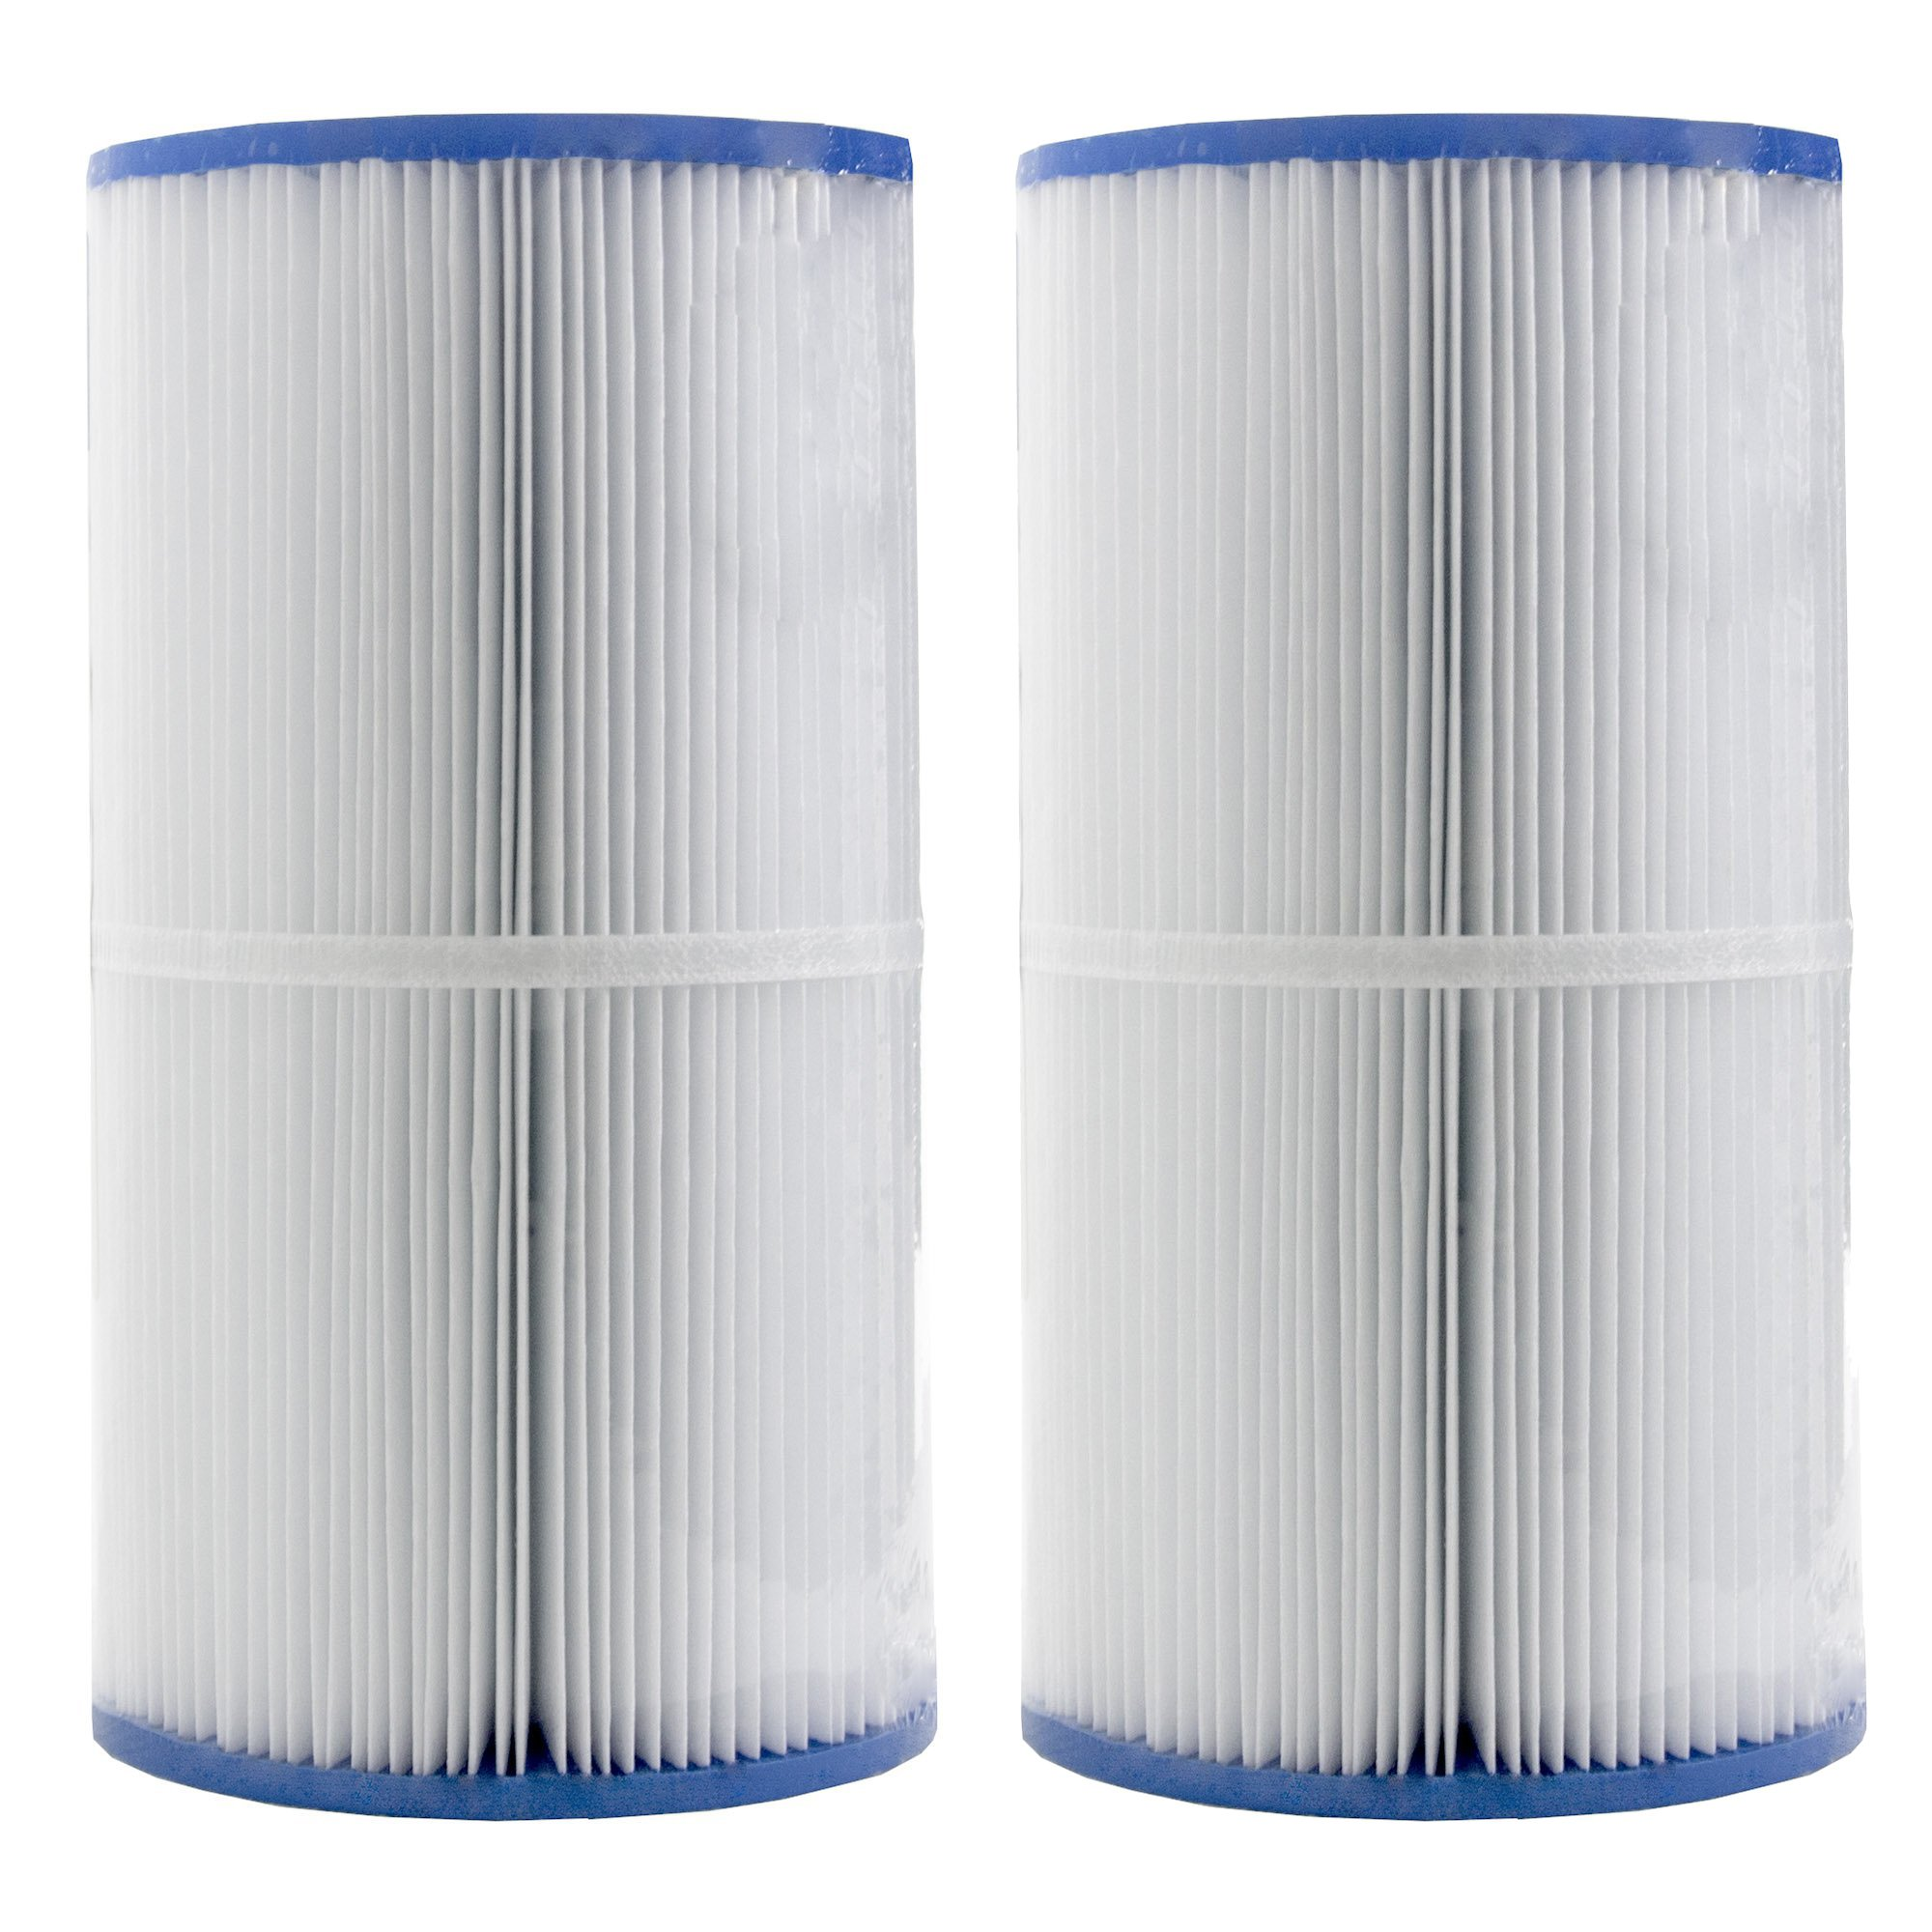 Unicel C-5601-2 Replacement Filter Cartridge (2 Pack)